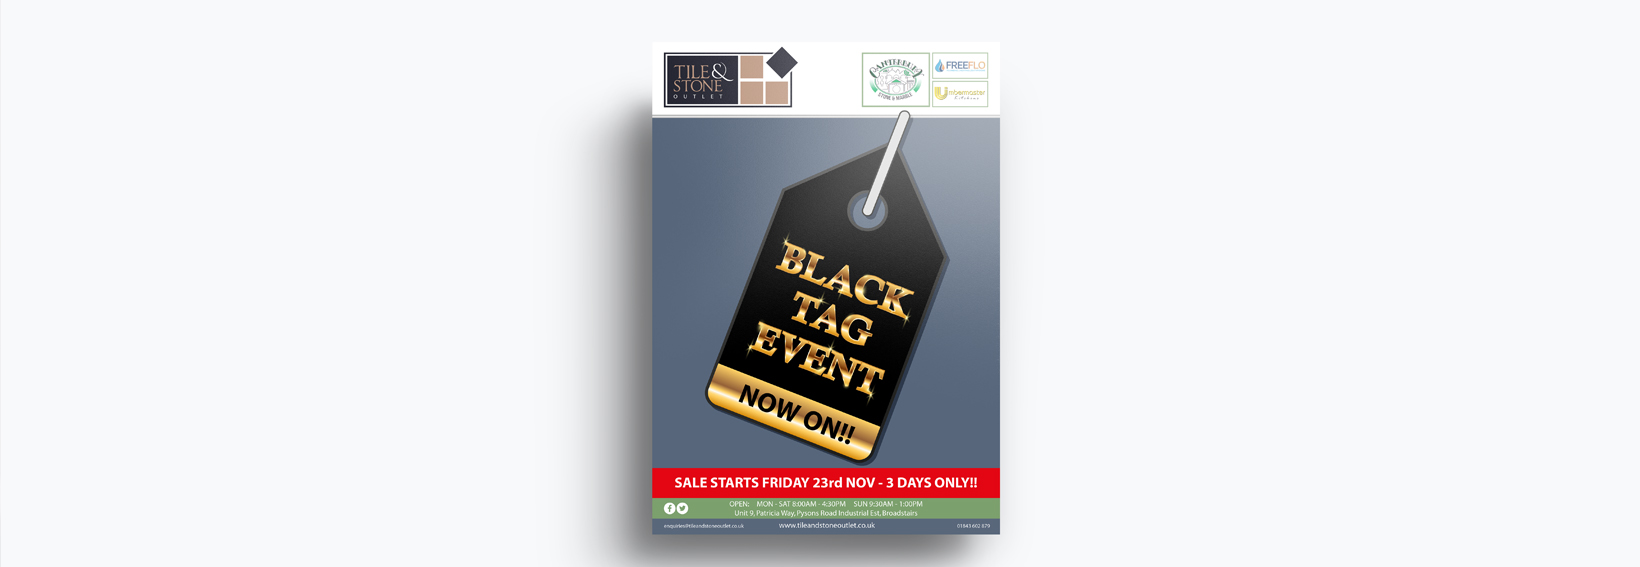 Graphic Design Banner, tile and stone, black sale, broadstairs, kent, uk